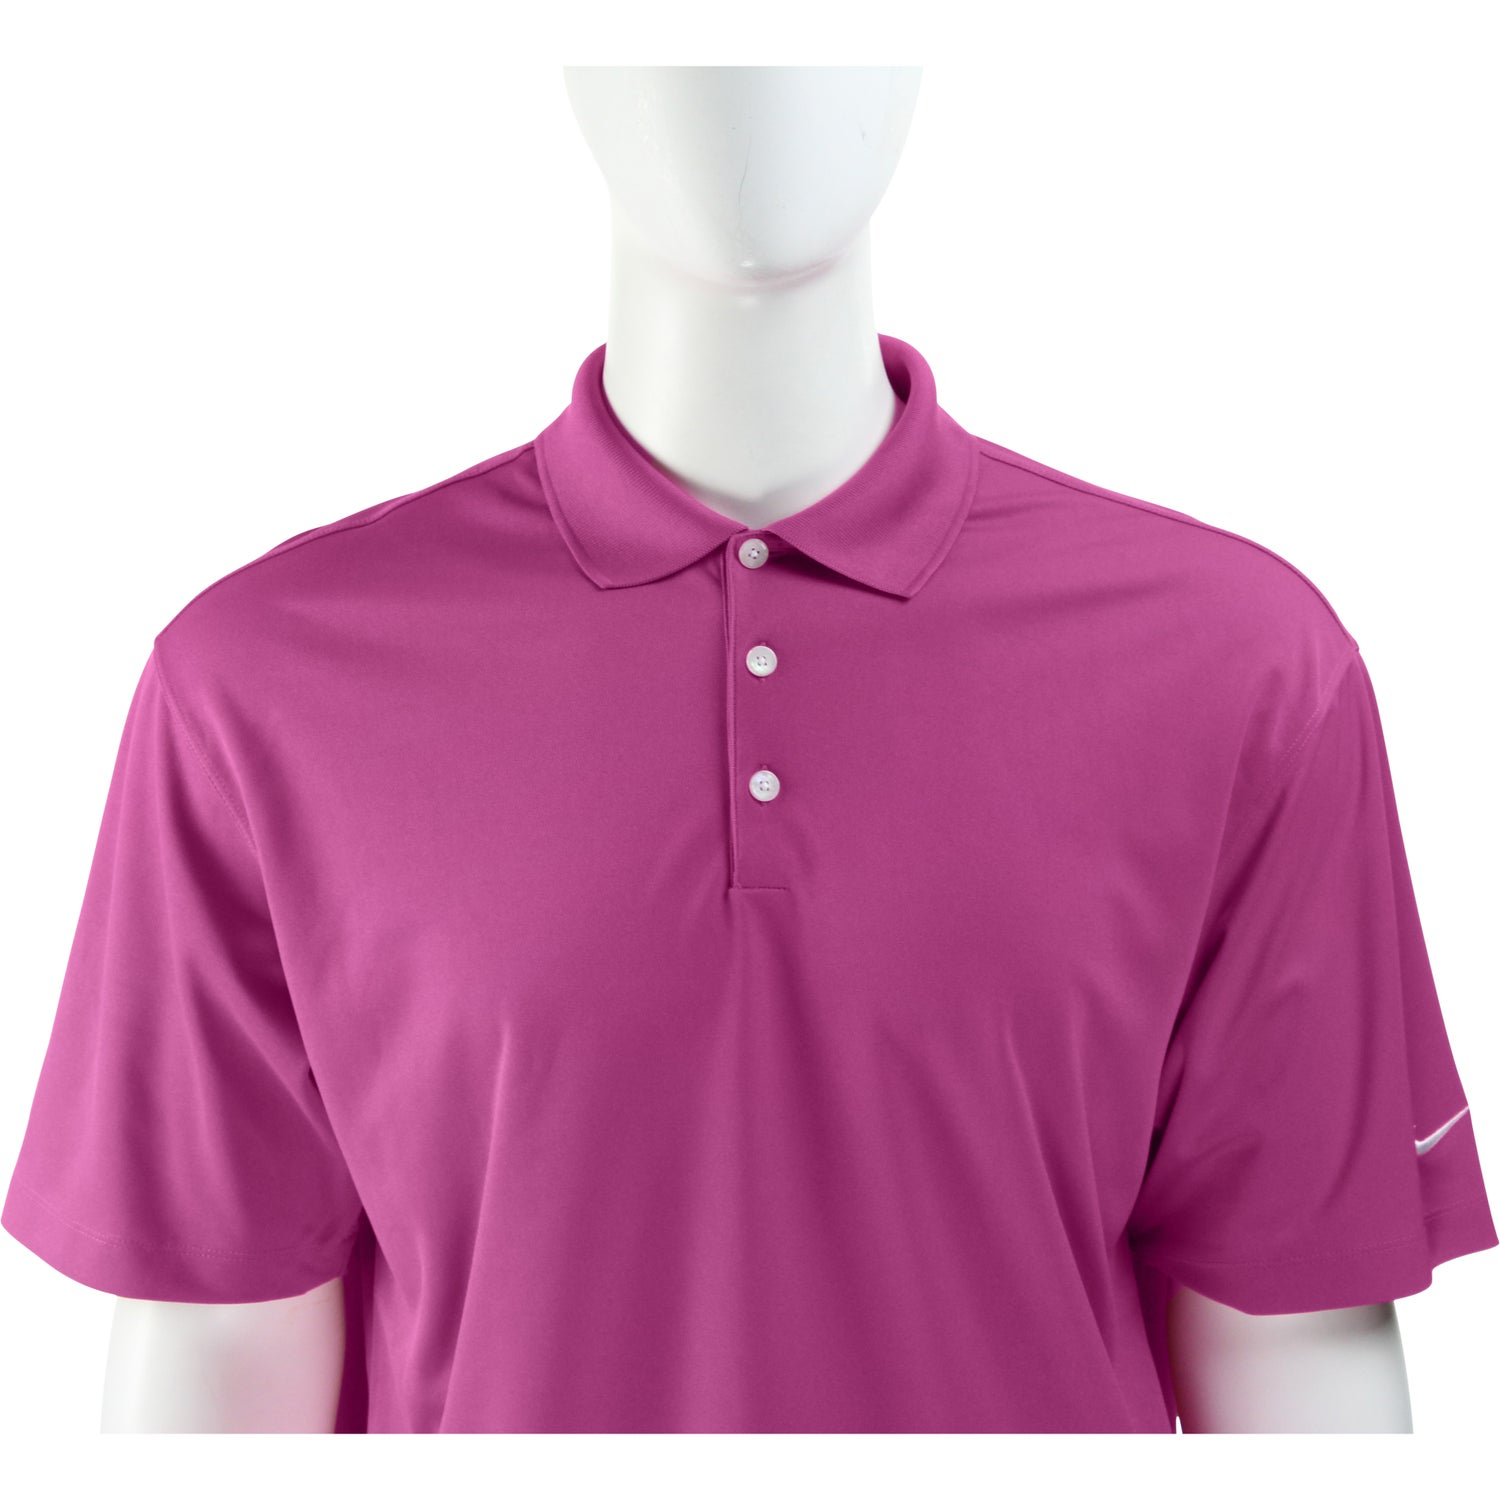 NIKE GOLF Dri-FIT Micro Pique Polo Shirt (Laser Engraved ...